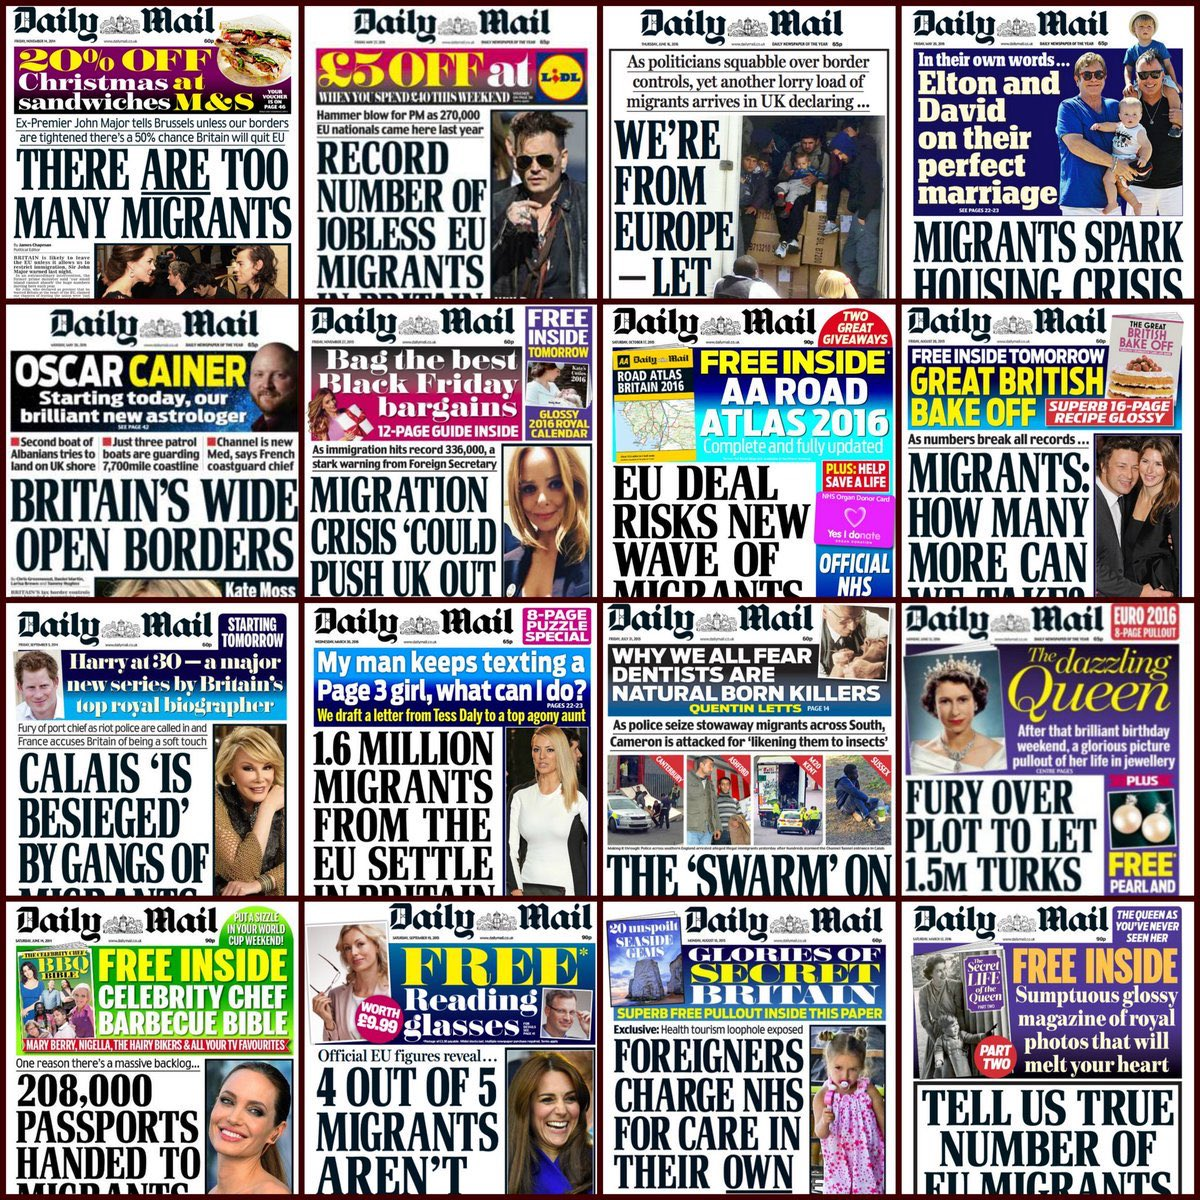 People saying the UK doesn't have a problem with racism must have extremely short memories. Grenfell Windrush Scandal The hostile environment The hateful rhetoric in the lead up to Brexit. #BlackLivesMatterUK